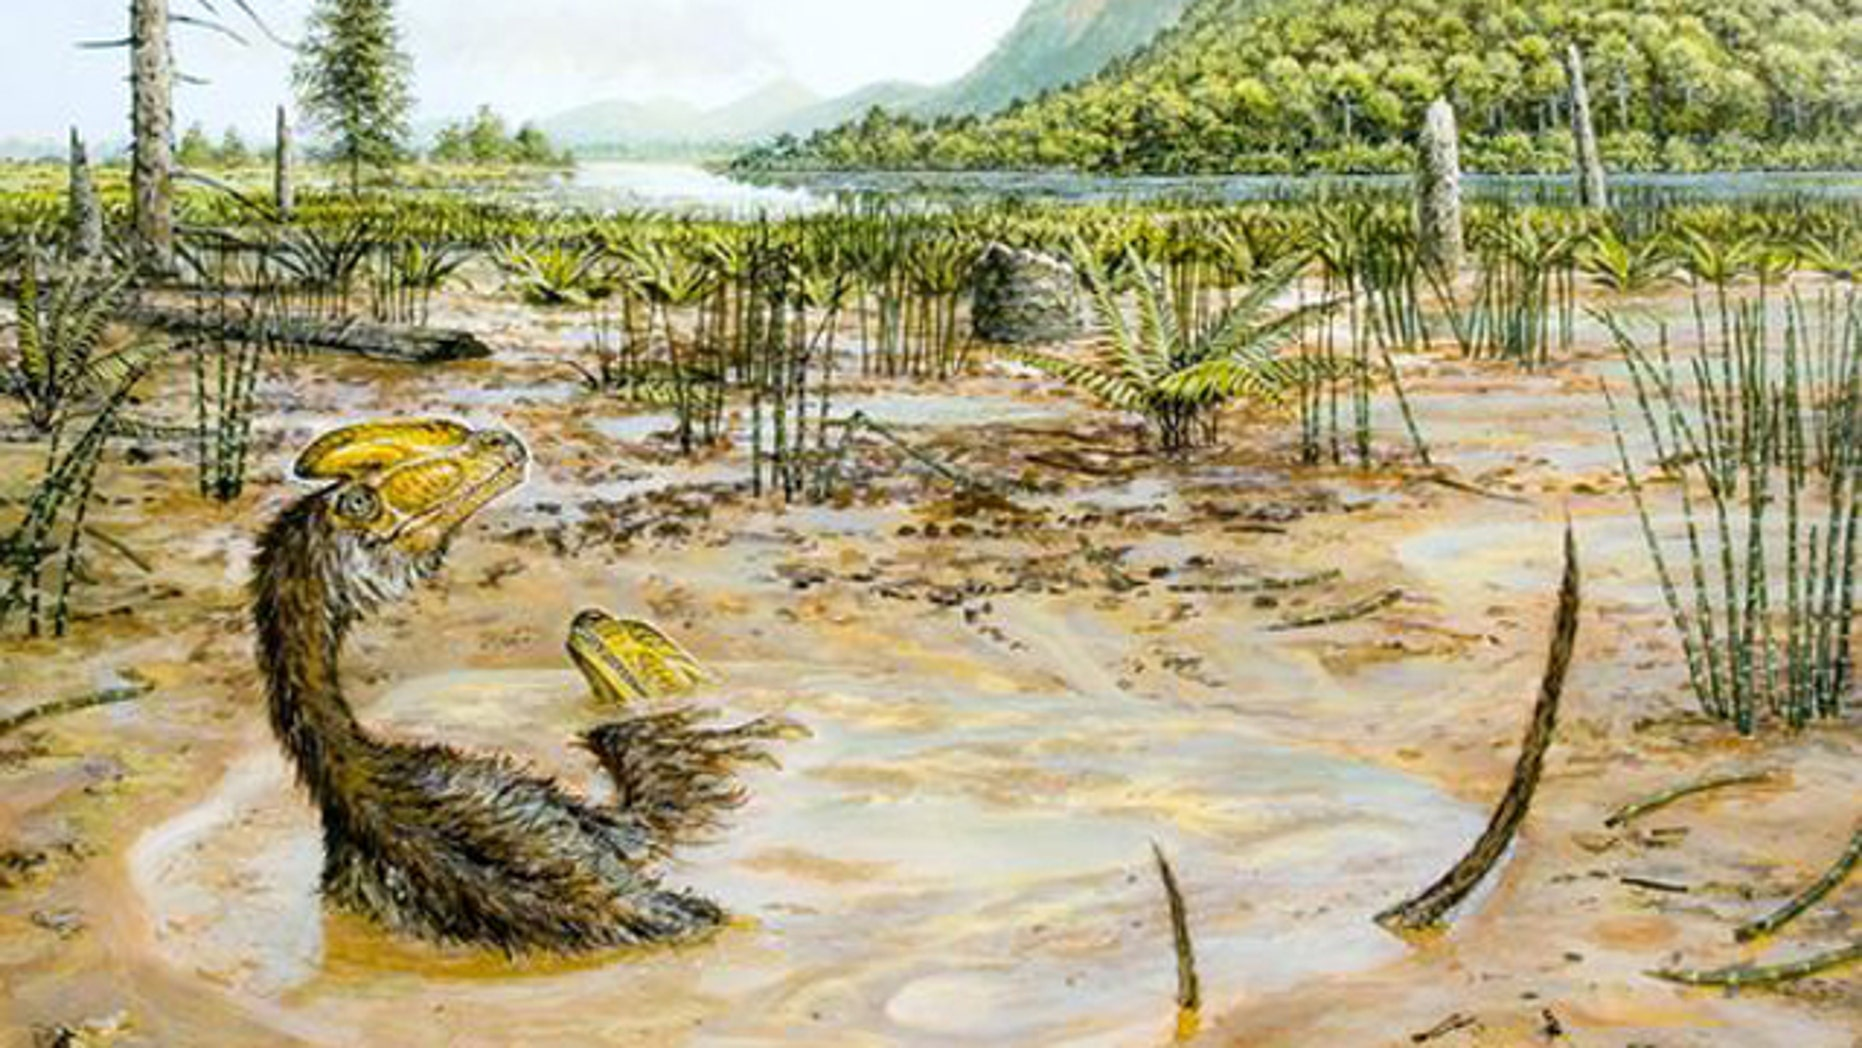 Two small Guanlong wucaii dinosaurs struggle to escape a muddy pit in what is now China during the late Jurassic period.